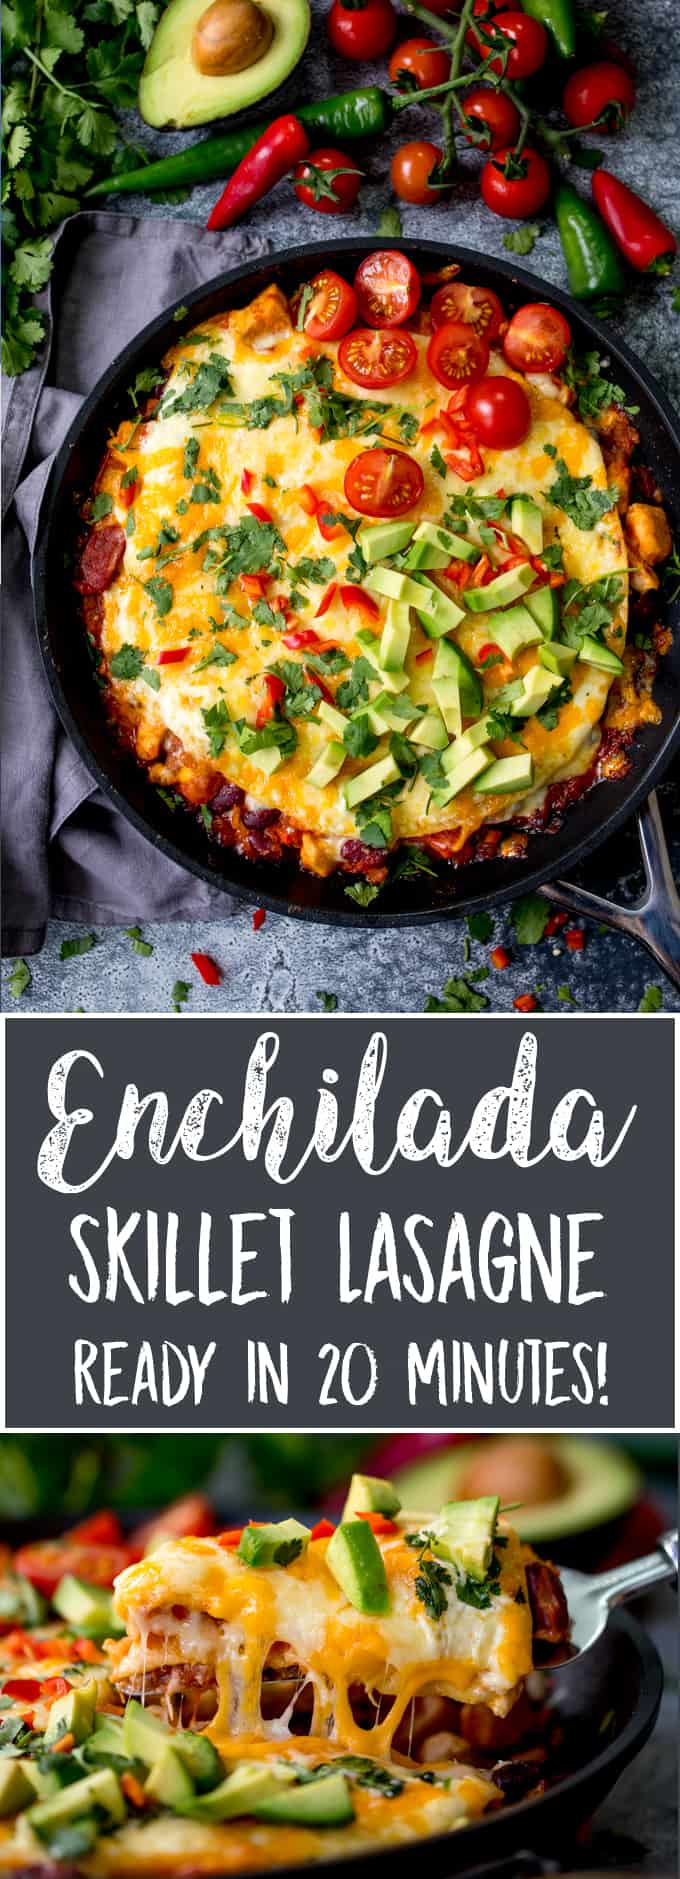 ThisEnchilada Skillet Lasagne is a super simple meal, made with chicken and chorizo in a spicy tomato sauce. Ready in 20 minutes! #enchilada #chickenenchilada #enchiladalasagna #lasagna #chorizo #skilletlasagna